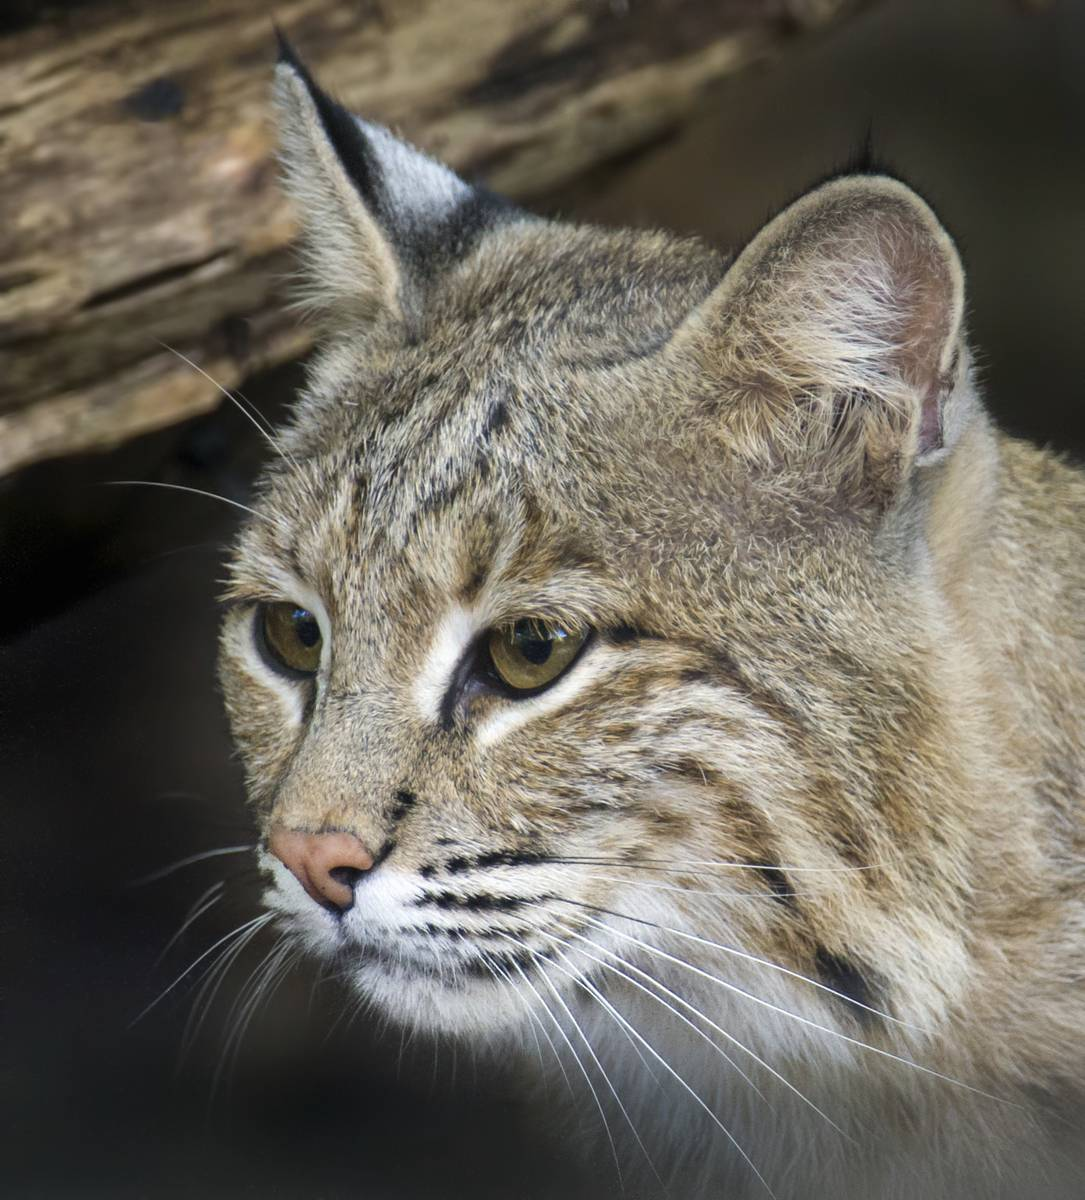 This photo provided by the Smithsonian's National Zoo shows Ollie, a female bobcat the the zoo. Ollie, who escaped from its enclosure at the National Zoo in Washington, is perfectly capable of surviving in the wild and would find plenty to eat in Rock Creek Park if it wanted to stay there, zoo officials said. The female bobcat, believed to be about 7 years old, was found to be missing Monday, Jan. 30, 2017,  morning when it didn't show up for breakfast.  (Barbara Statas/Smithsonian's National Zoo via AP)